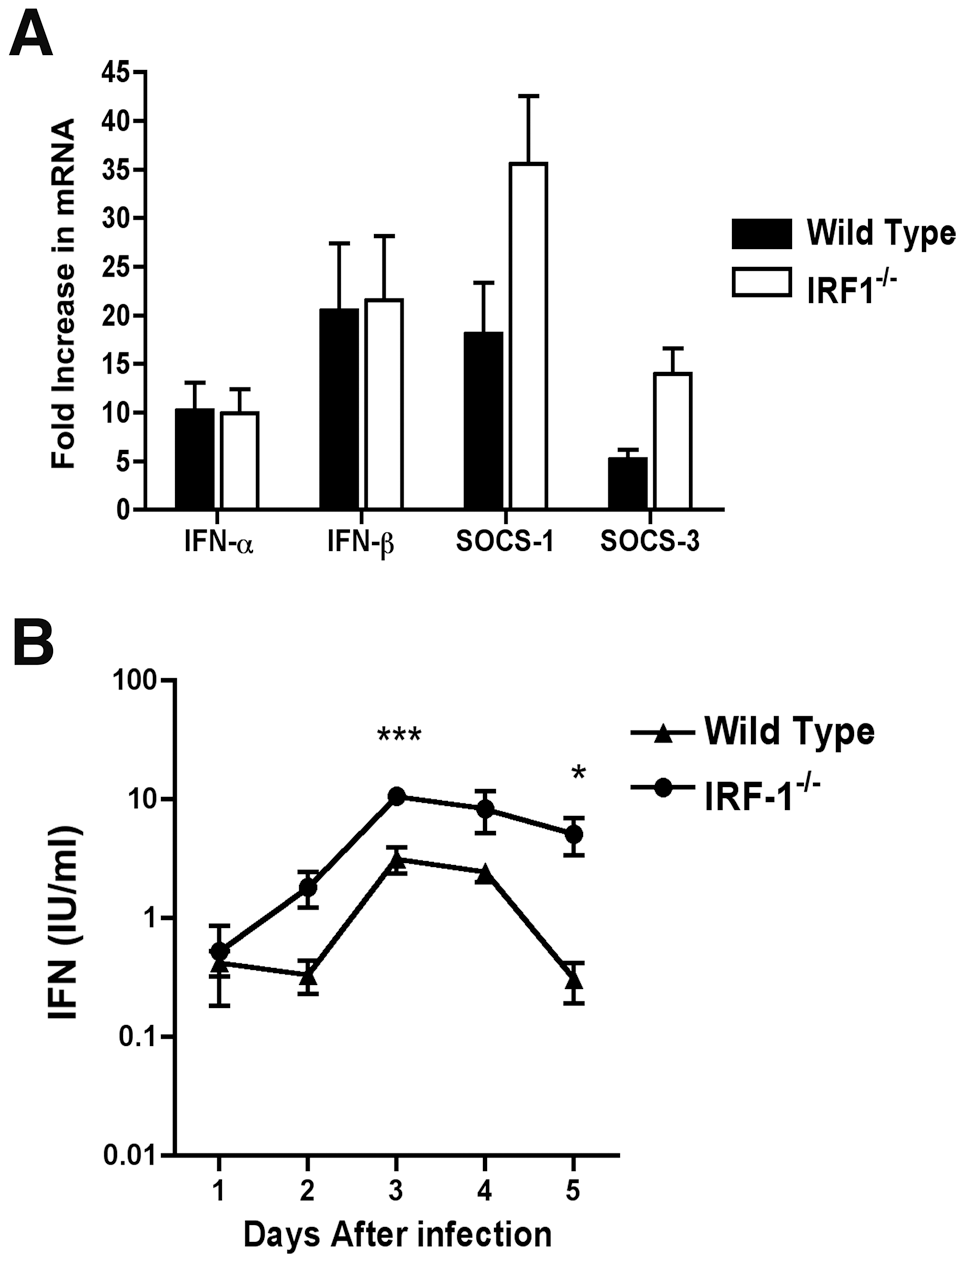 IFN-dependent responses in lymph node and serum of wild type and <i>IRF-1</i><sup>-/-</sup> mice infected with WNV.